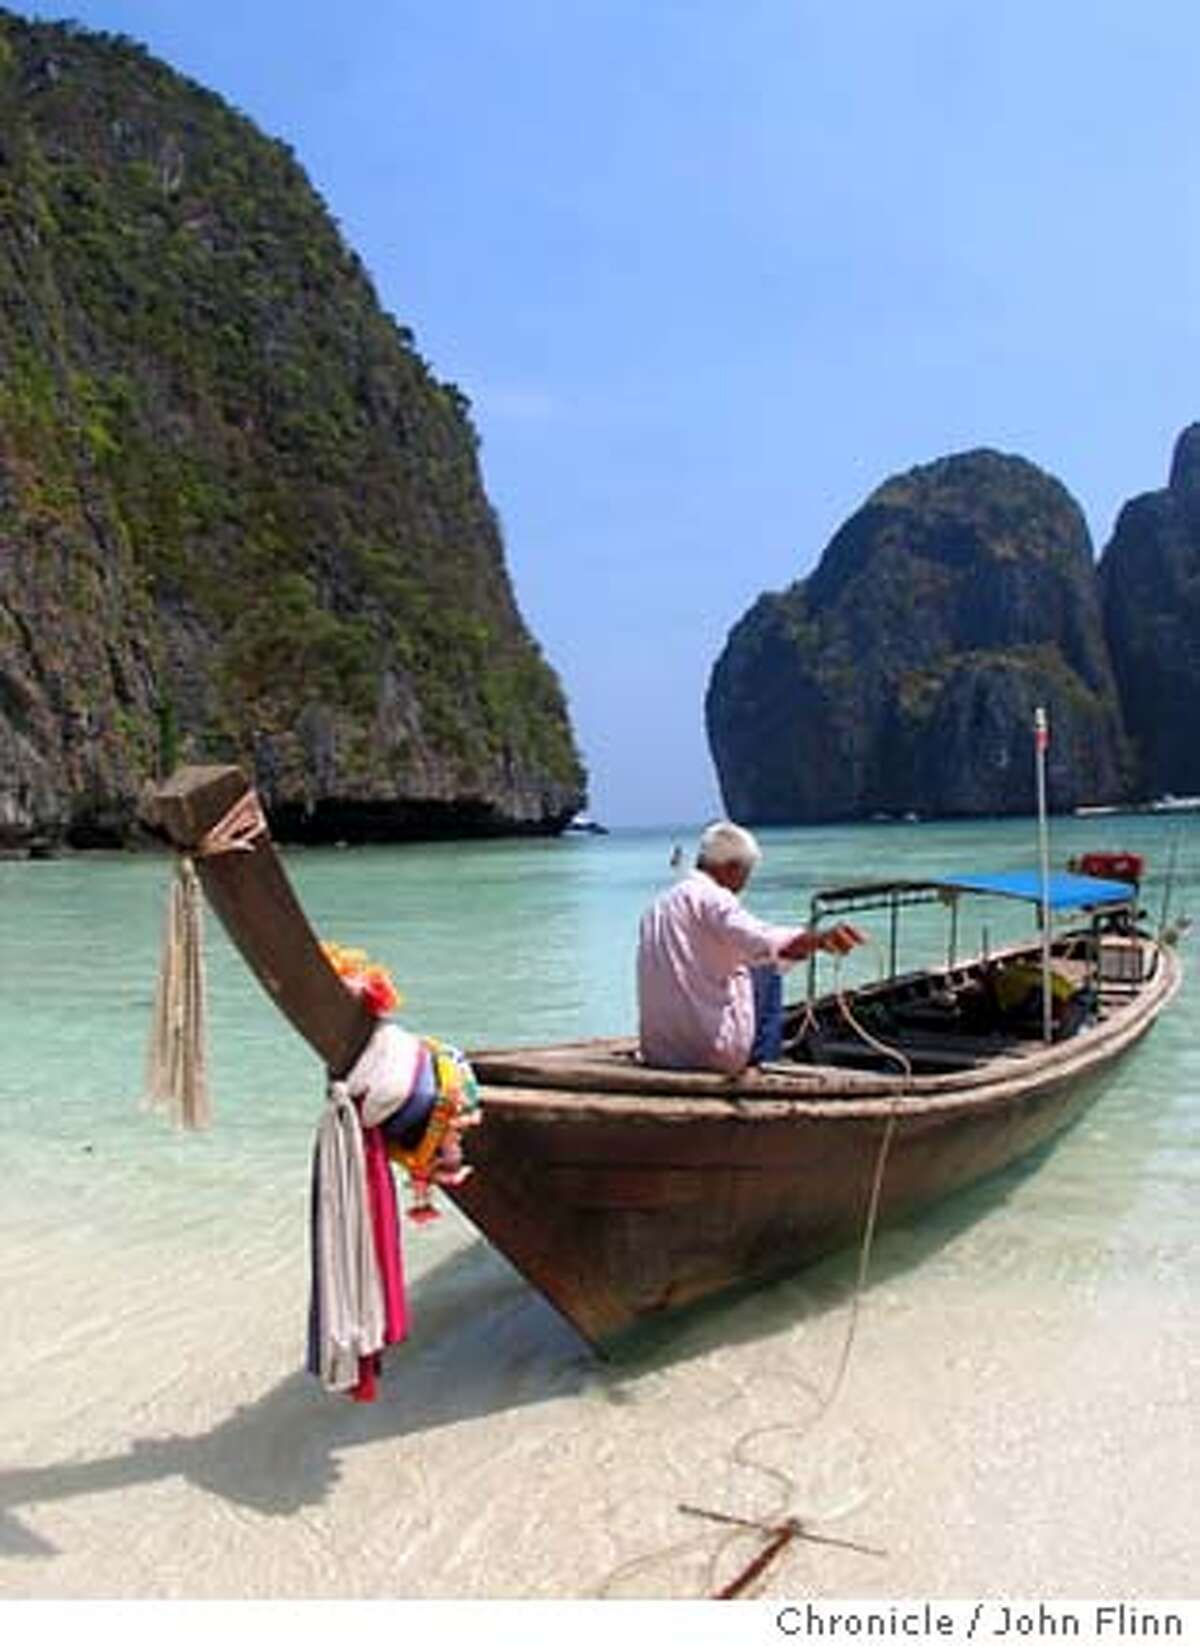 TRAVEL THAILAND -- A traditional Thai long-tail boat pulls up to the beach on Phi Phi Leh island. The uninhabited island, where scenes for